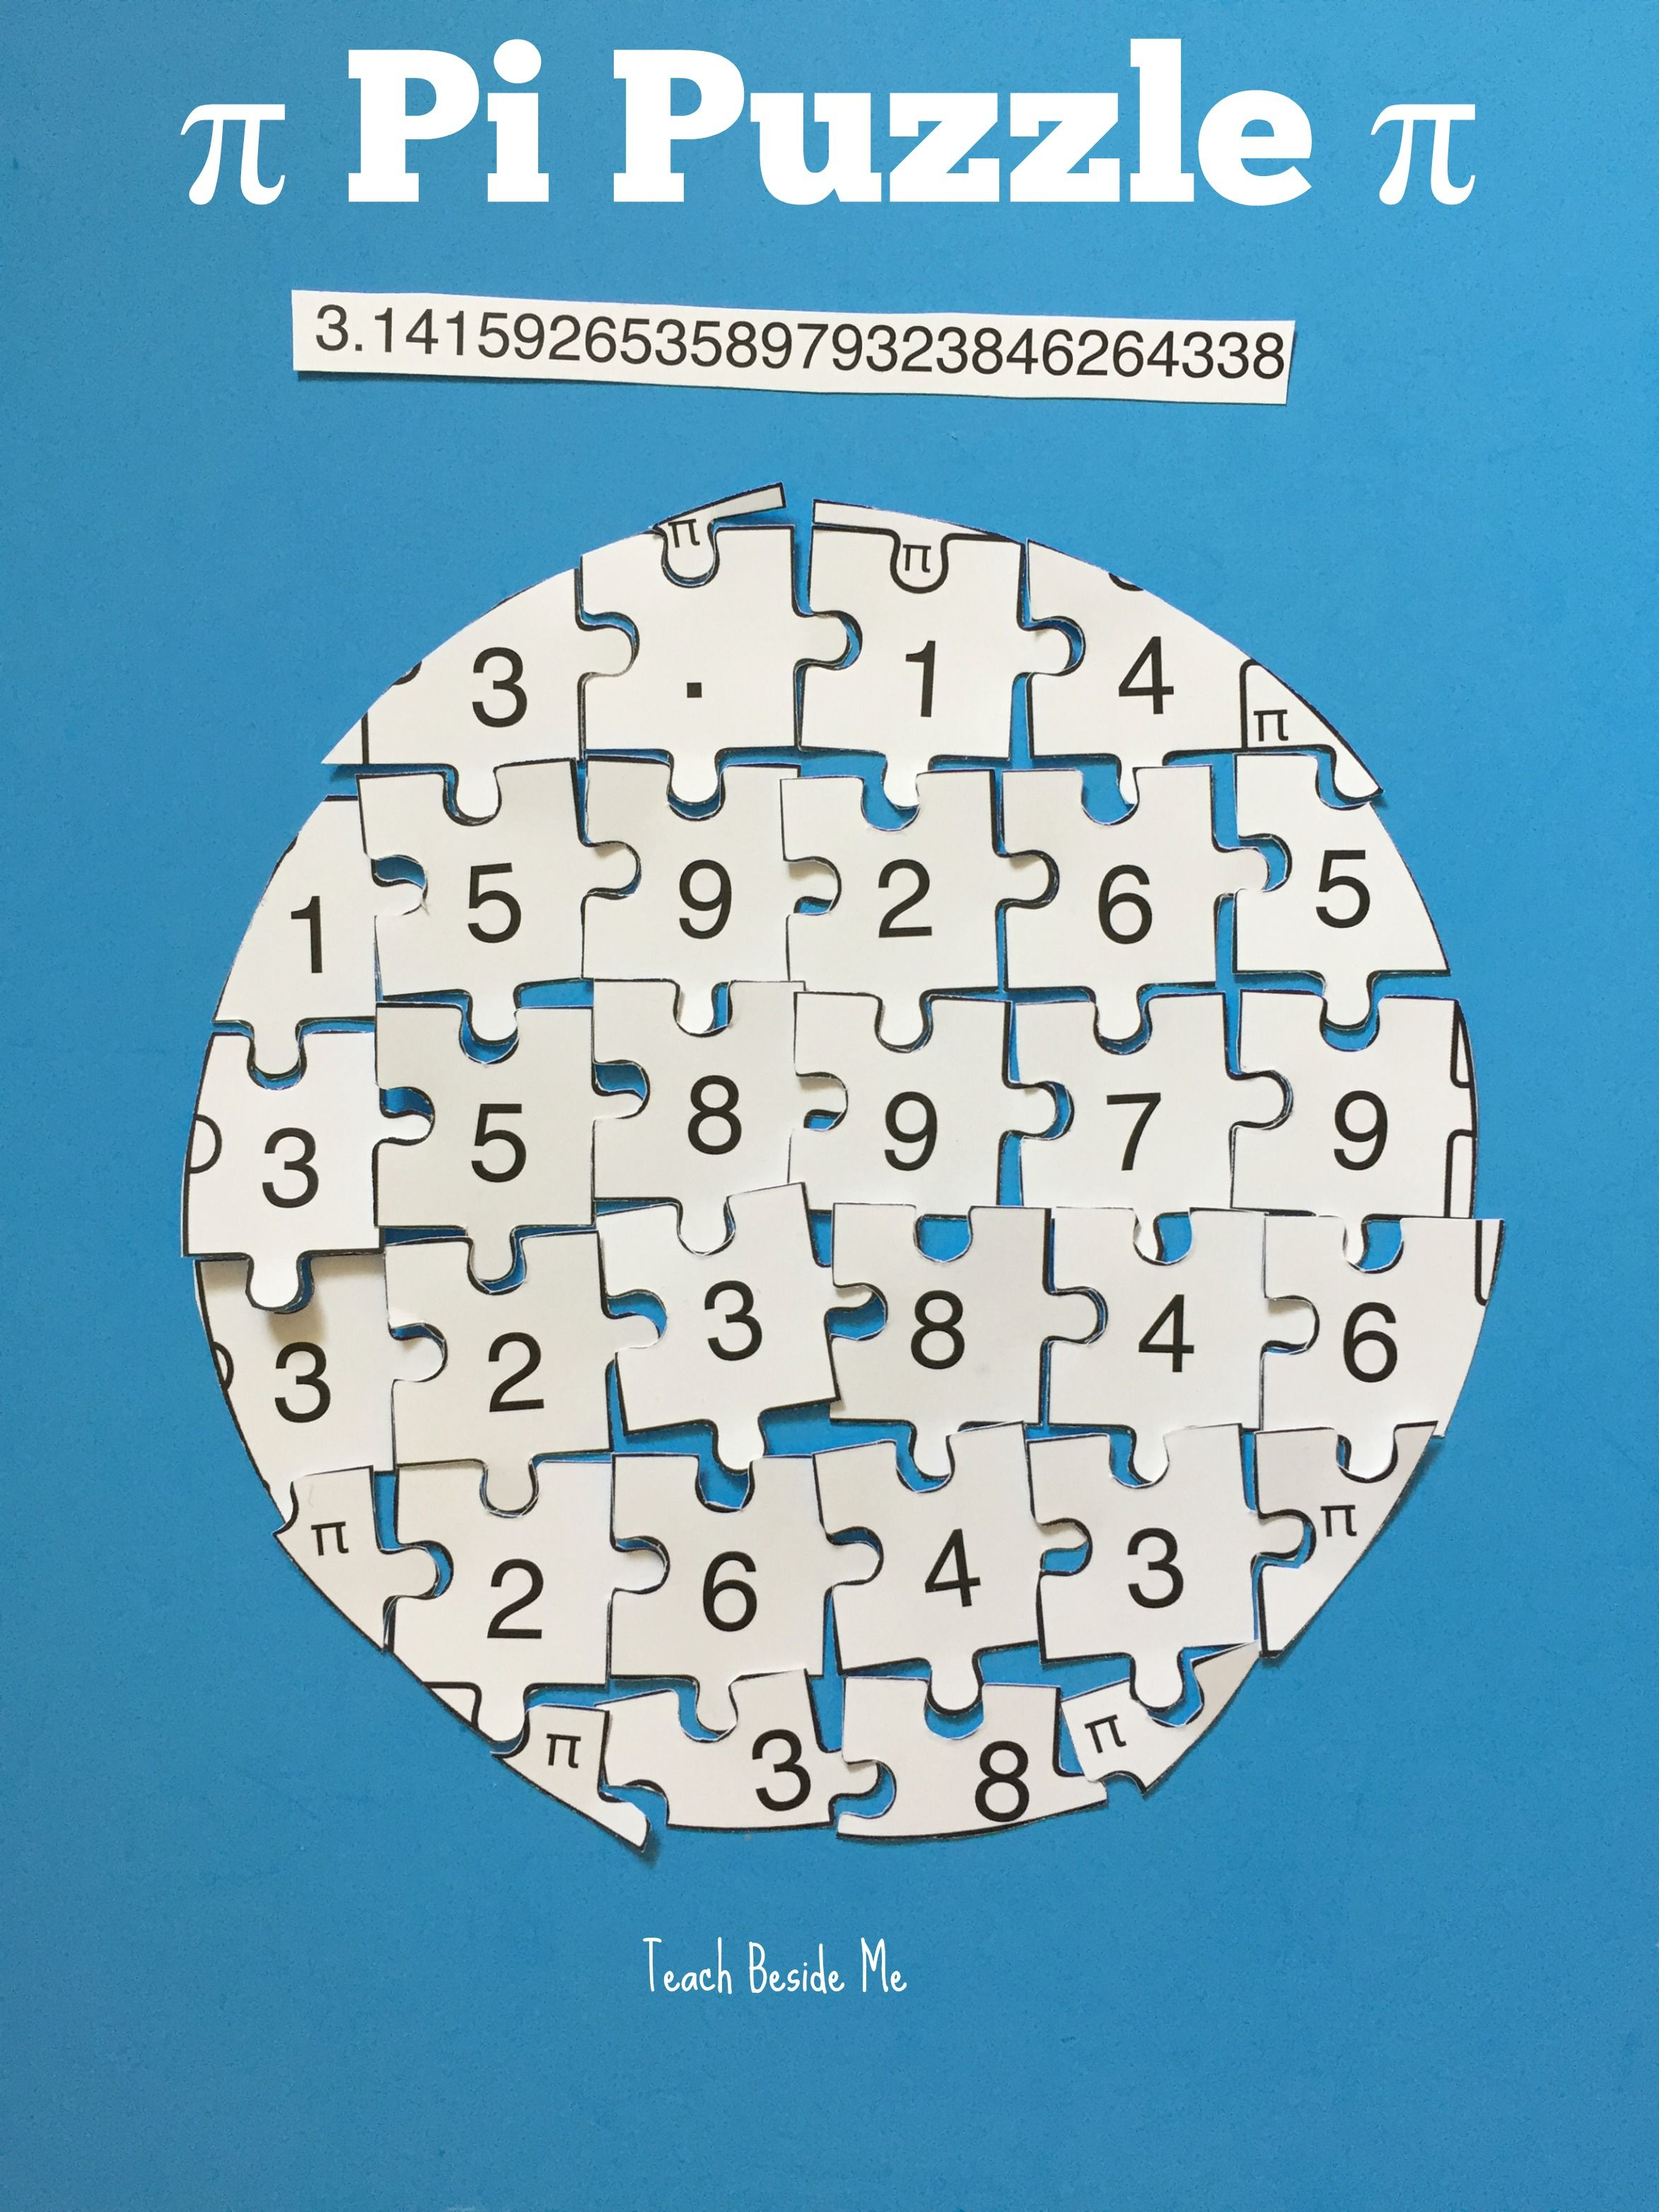 Printable Pi Puzzle For Pi Day | Teach Beside Me | Teaching Math - Printable Daily Puzzle